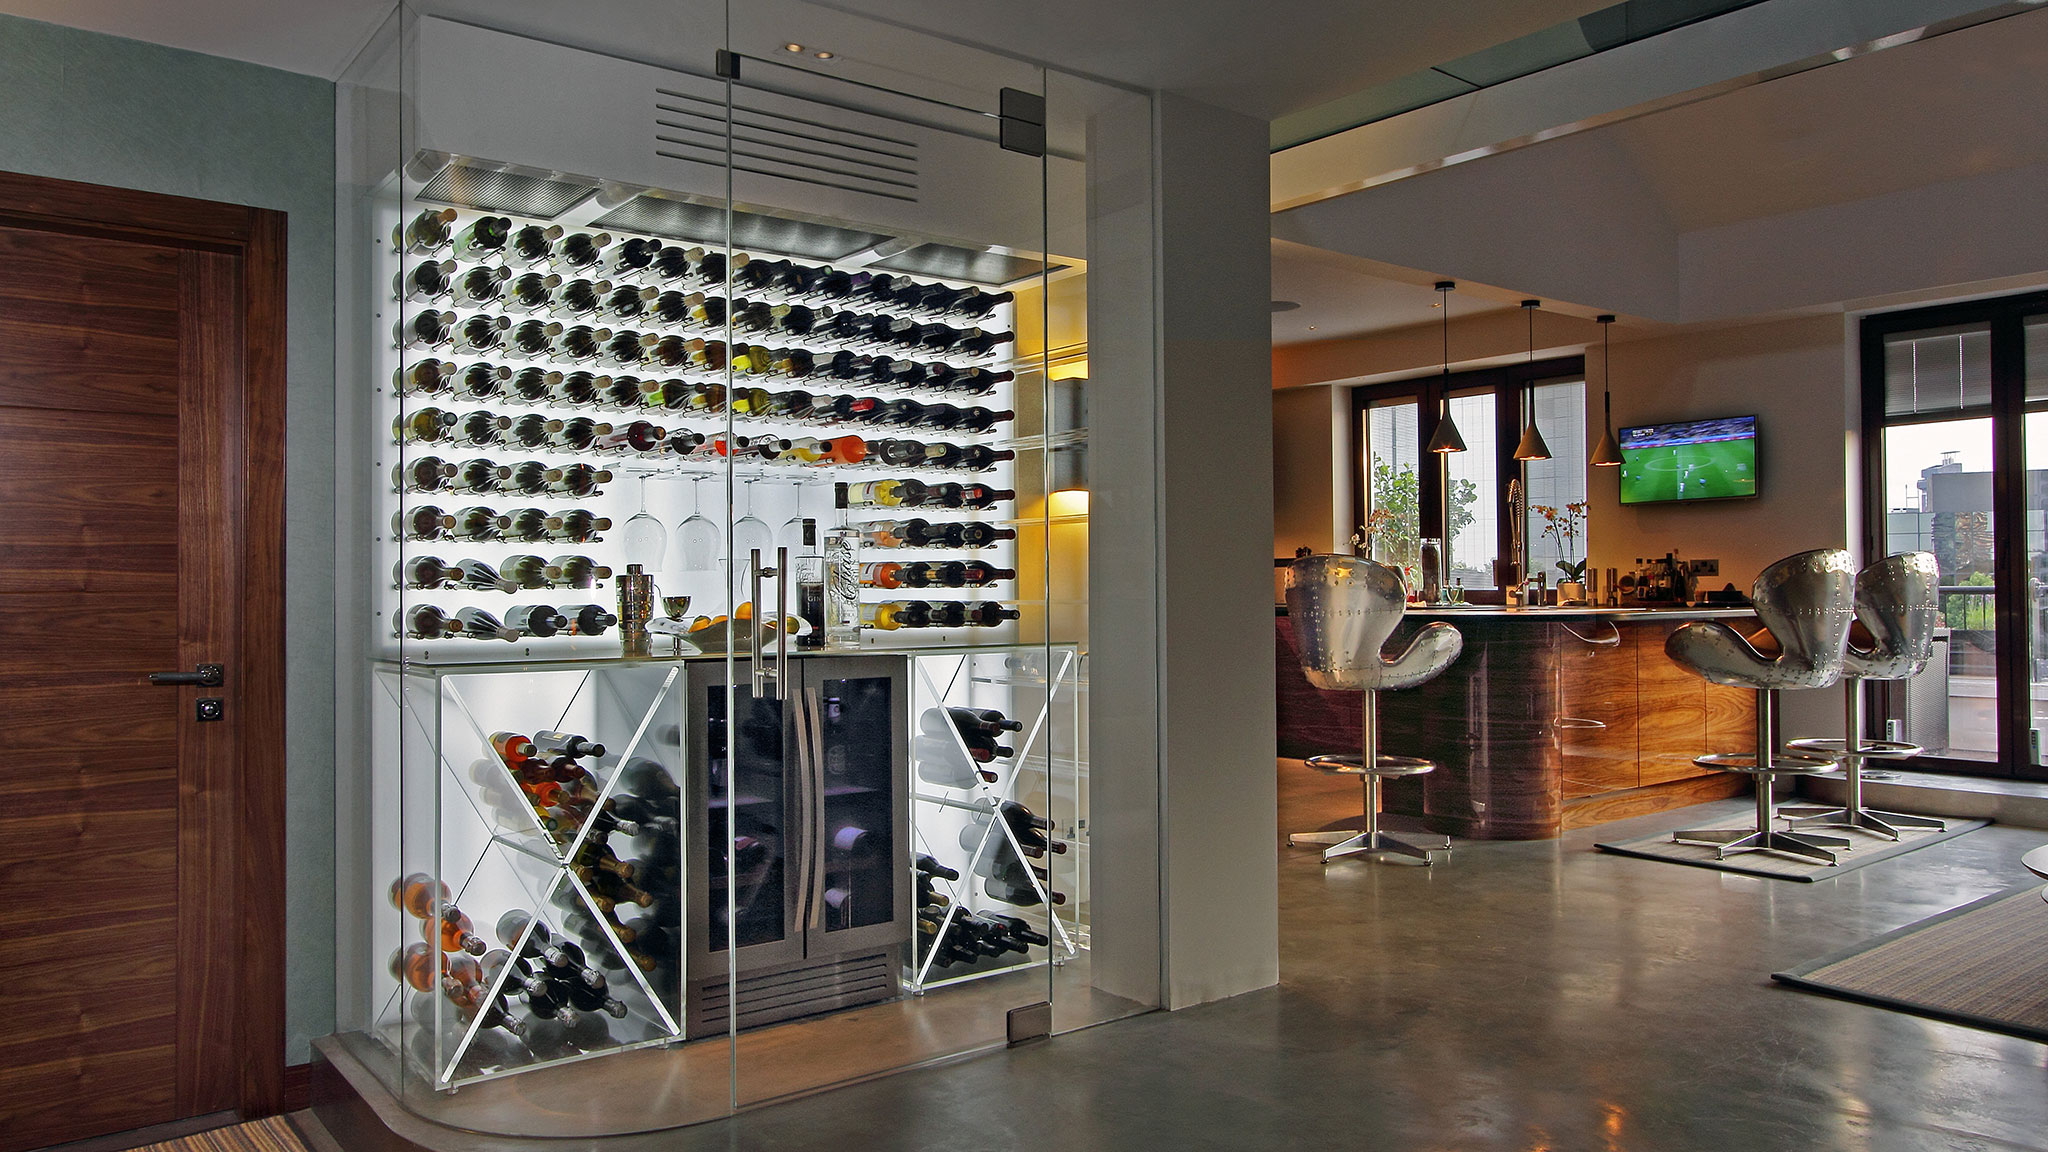 Wine cellars come out of the basement to become status symbols